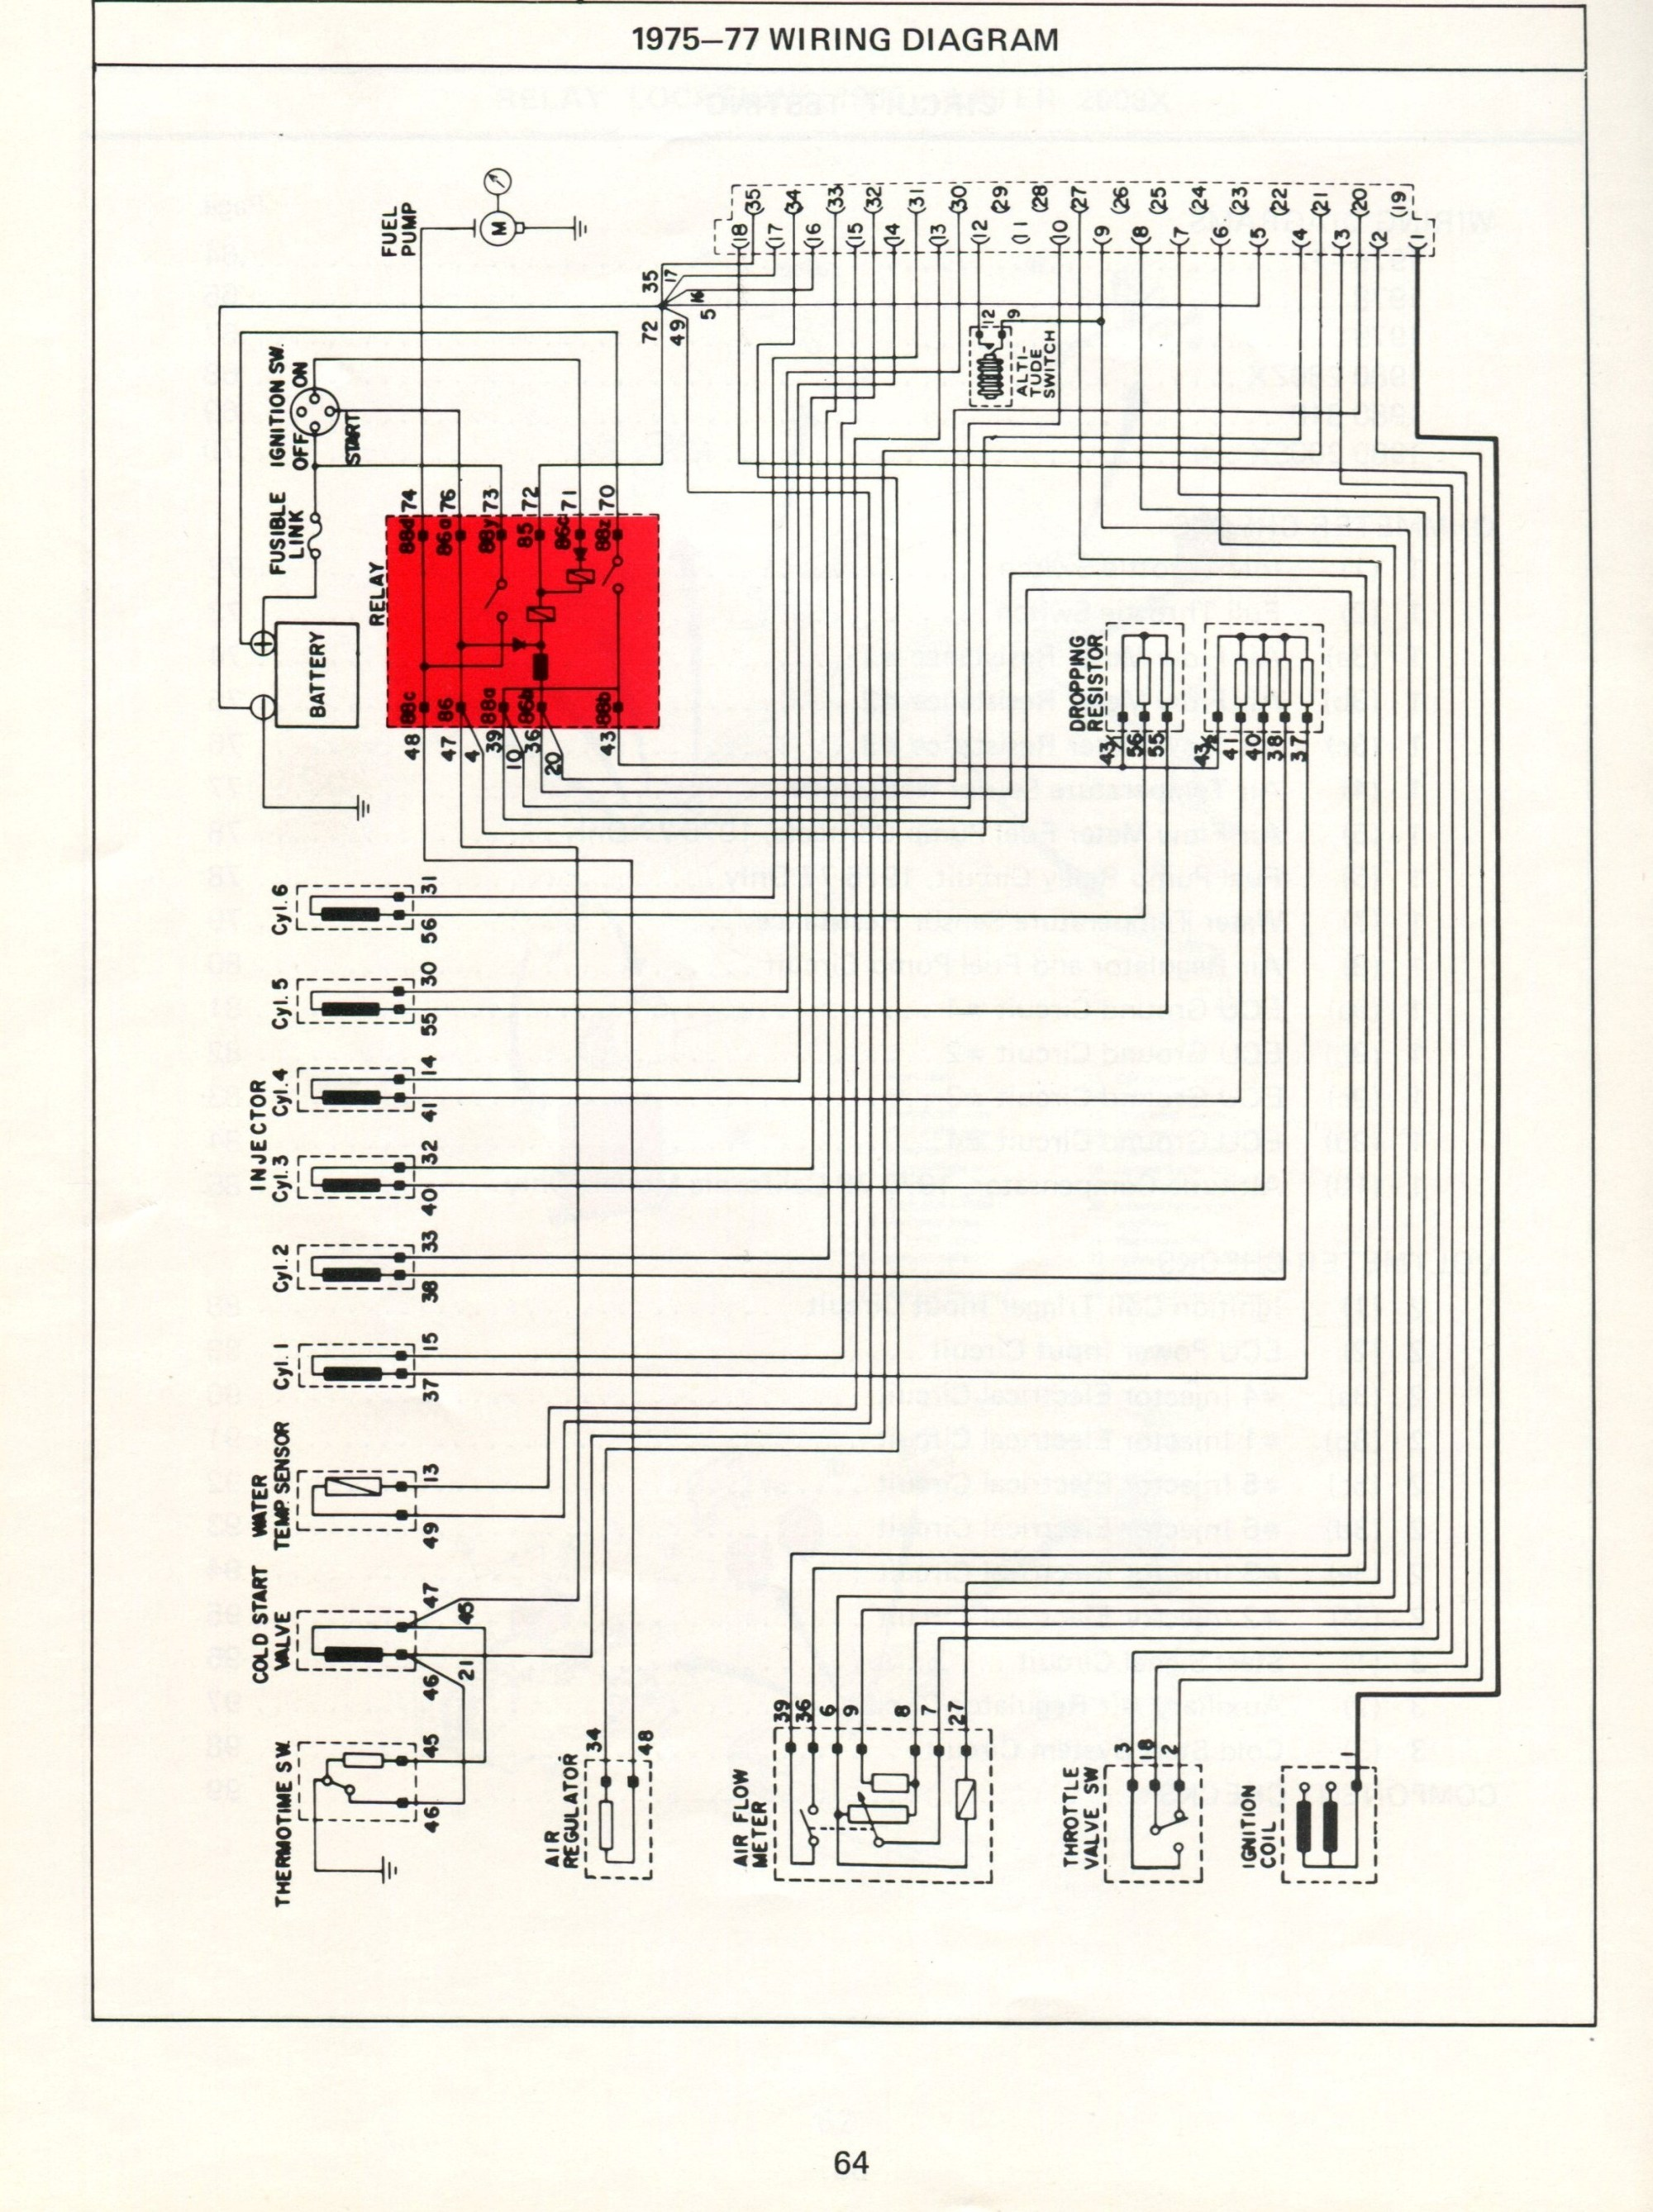 hight resolution of 75 280z wiring diagram wiring diagram75 280z wiring diagram